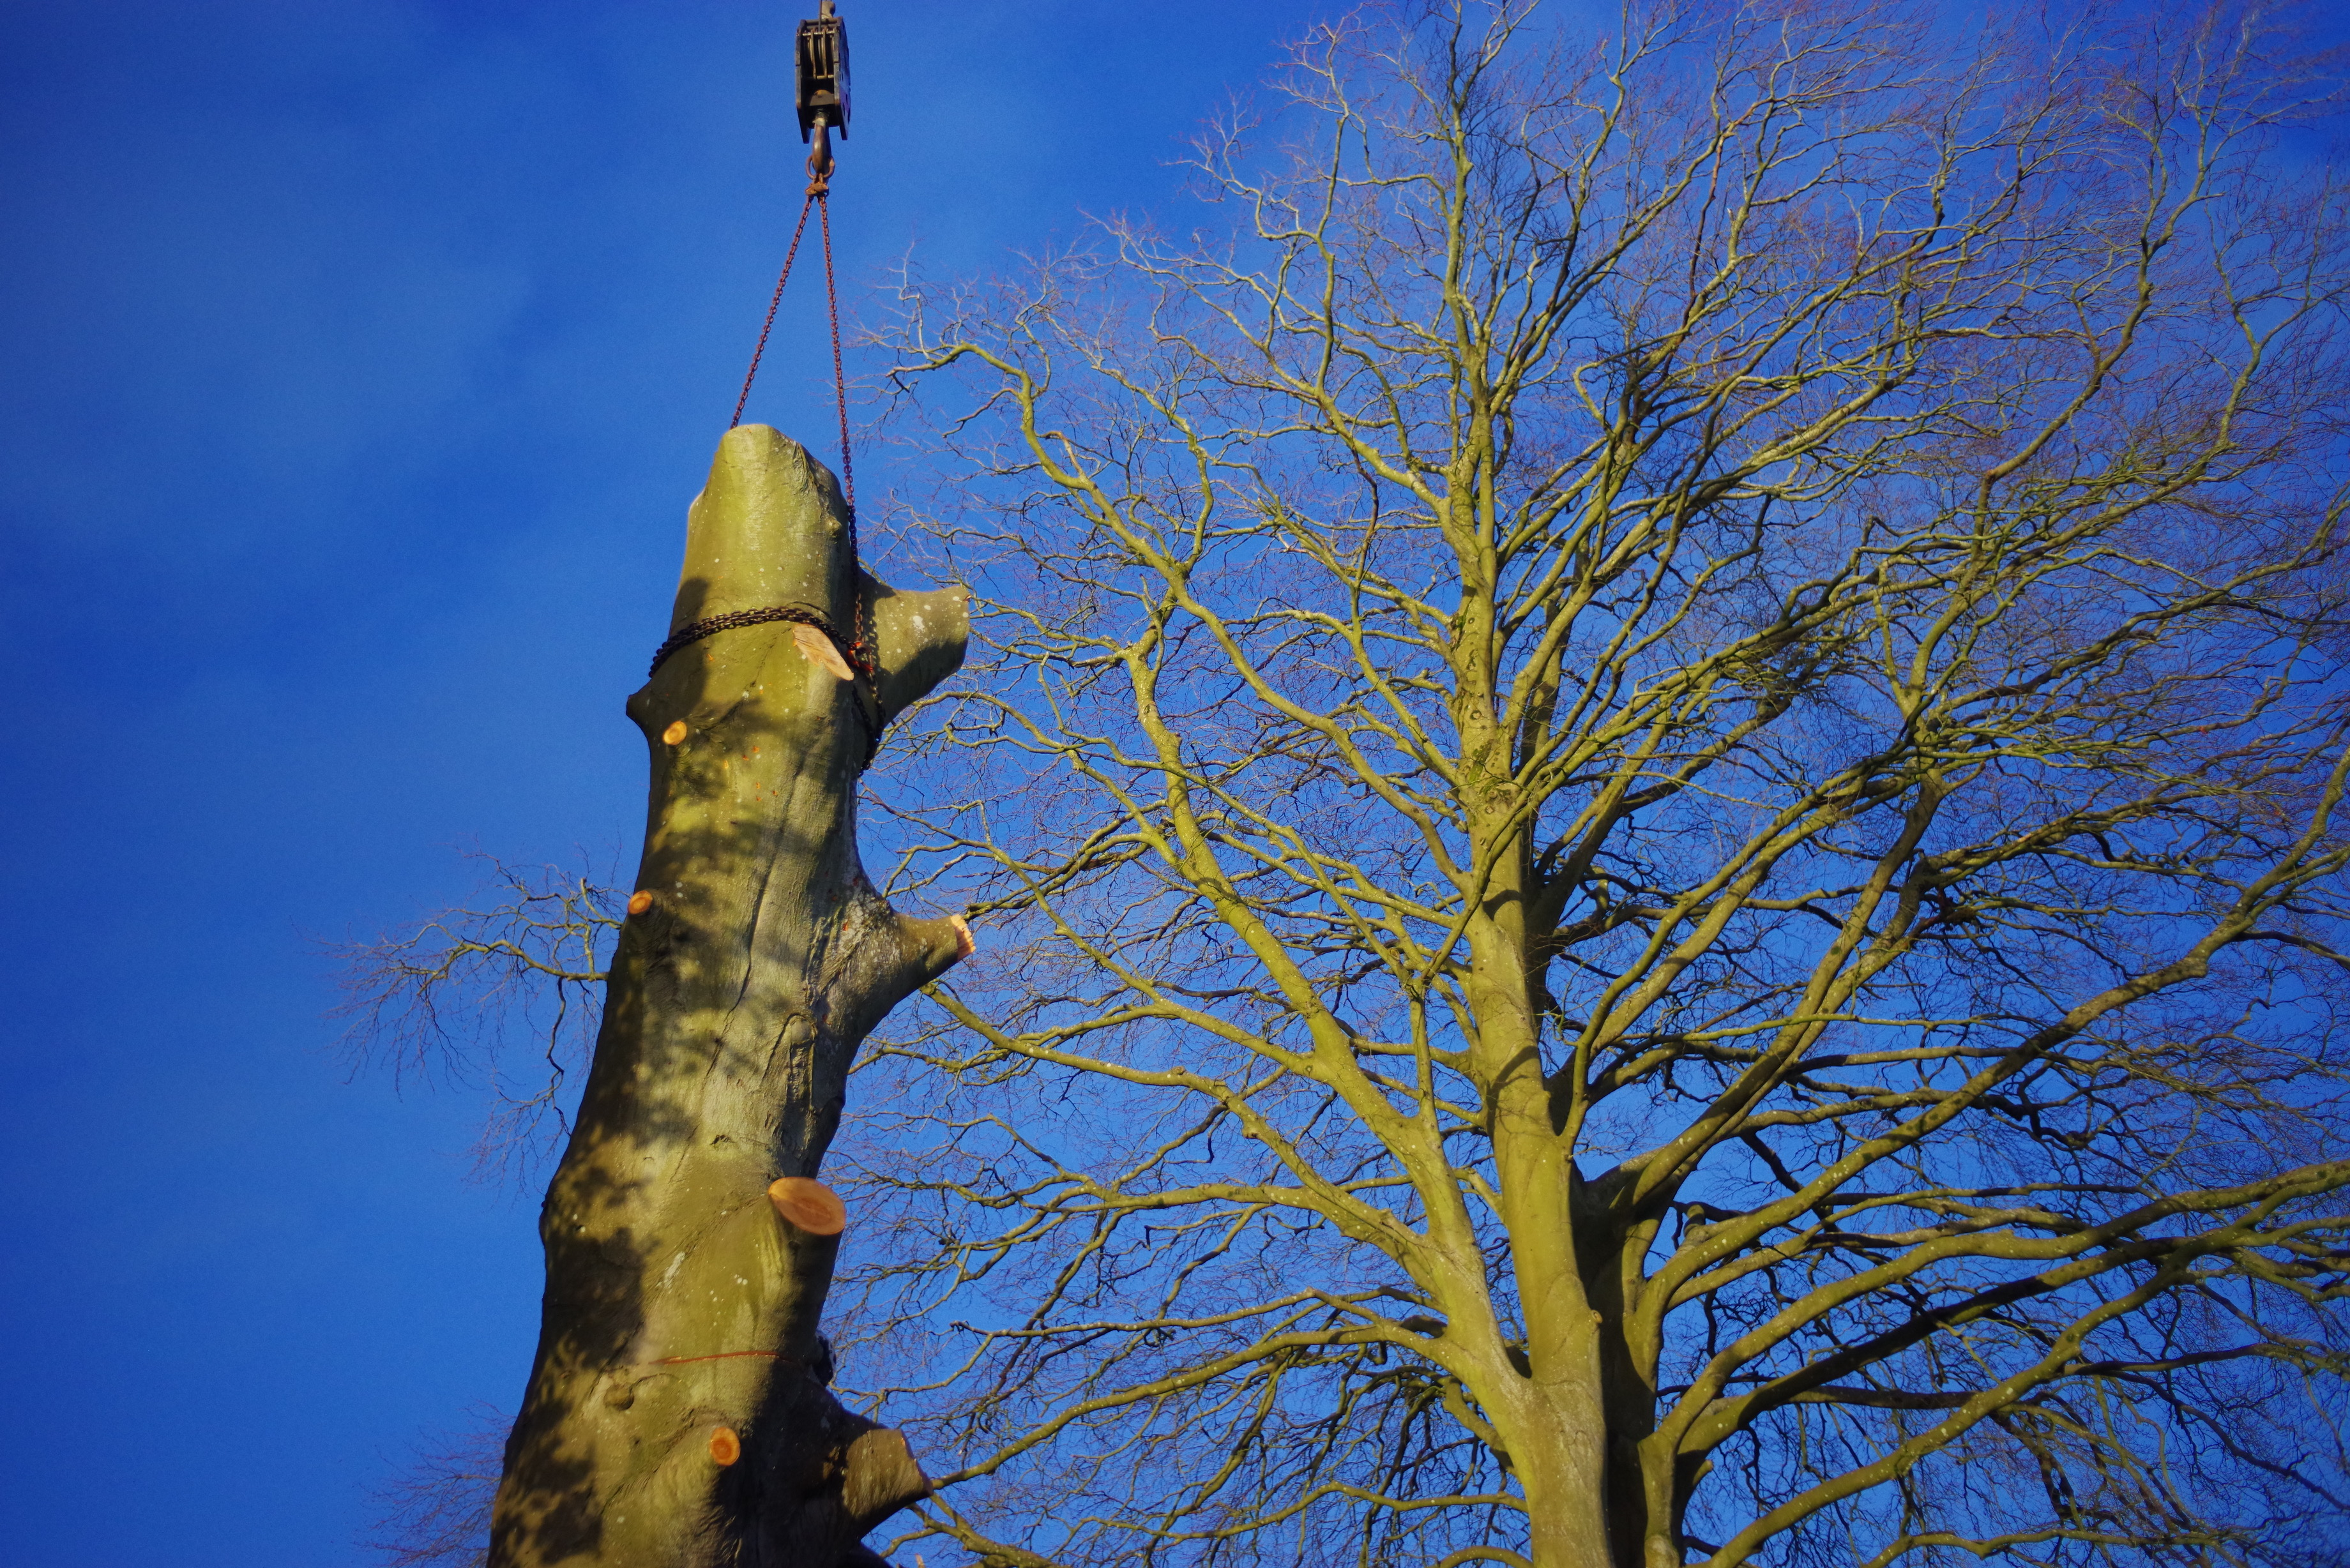 Beech stem being lifted by crane